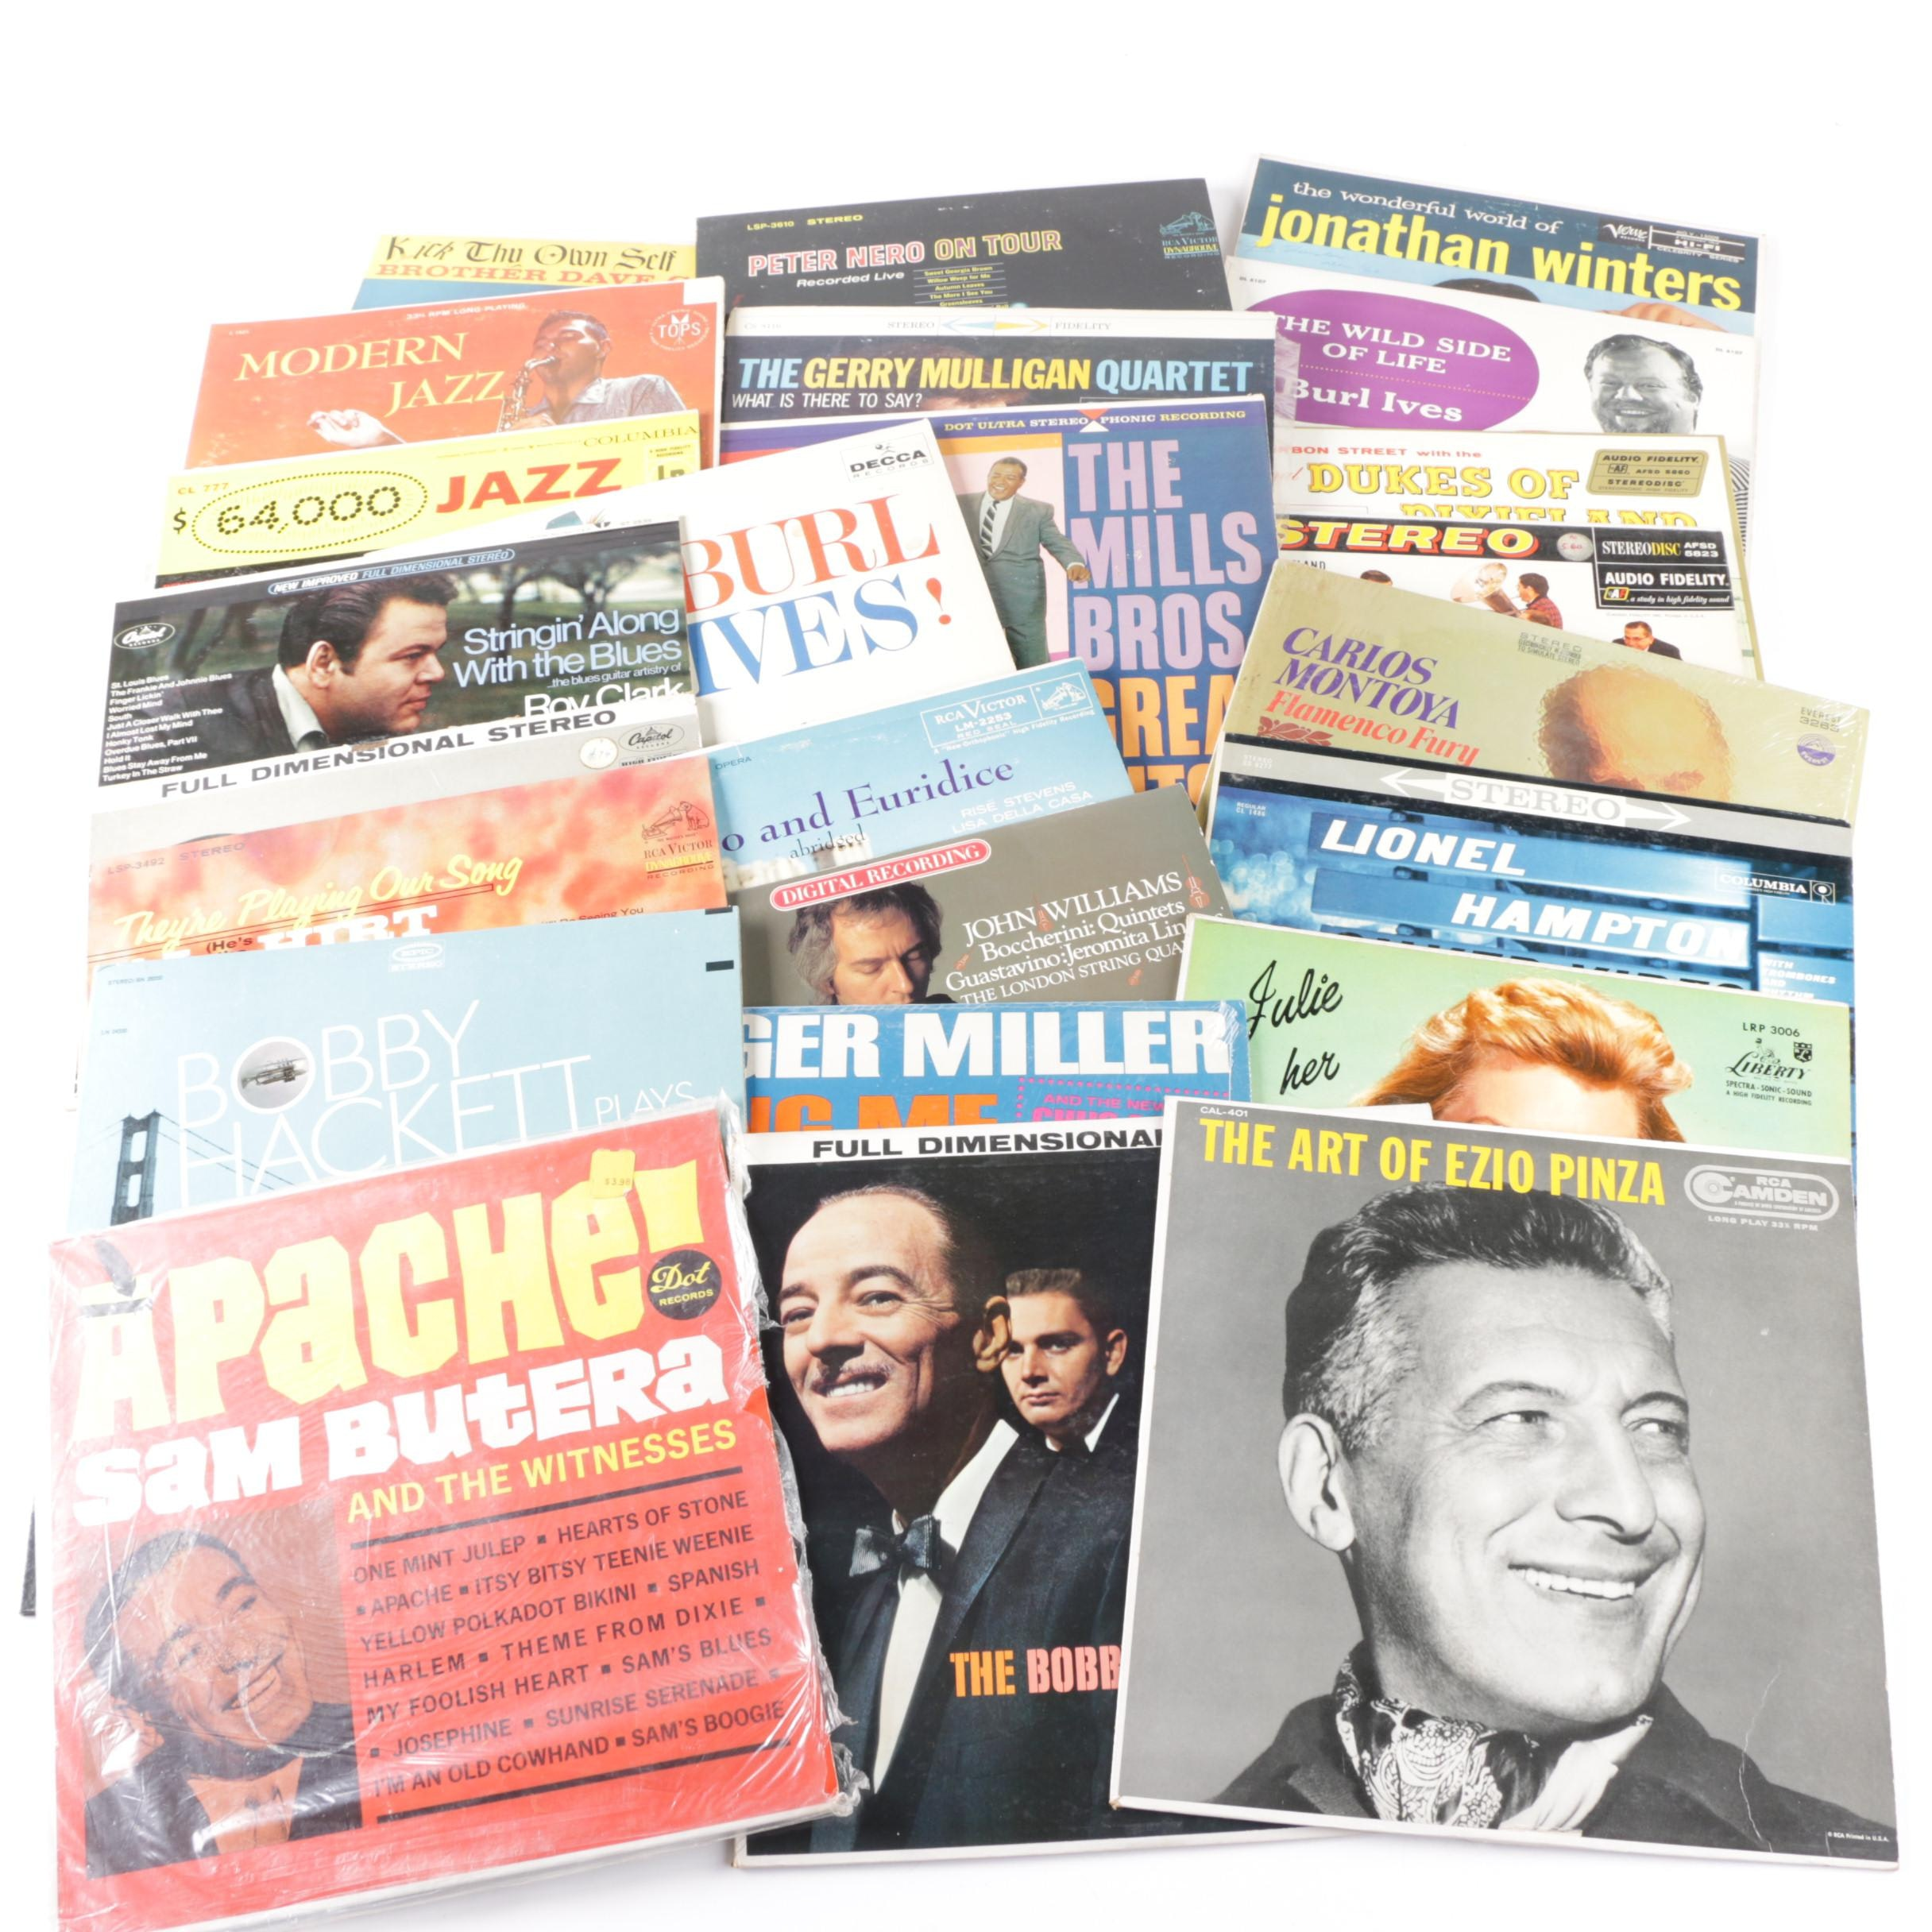 Sinatra, Gerry Mulligan, Other Jazz and Easy Listening LPs